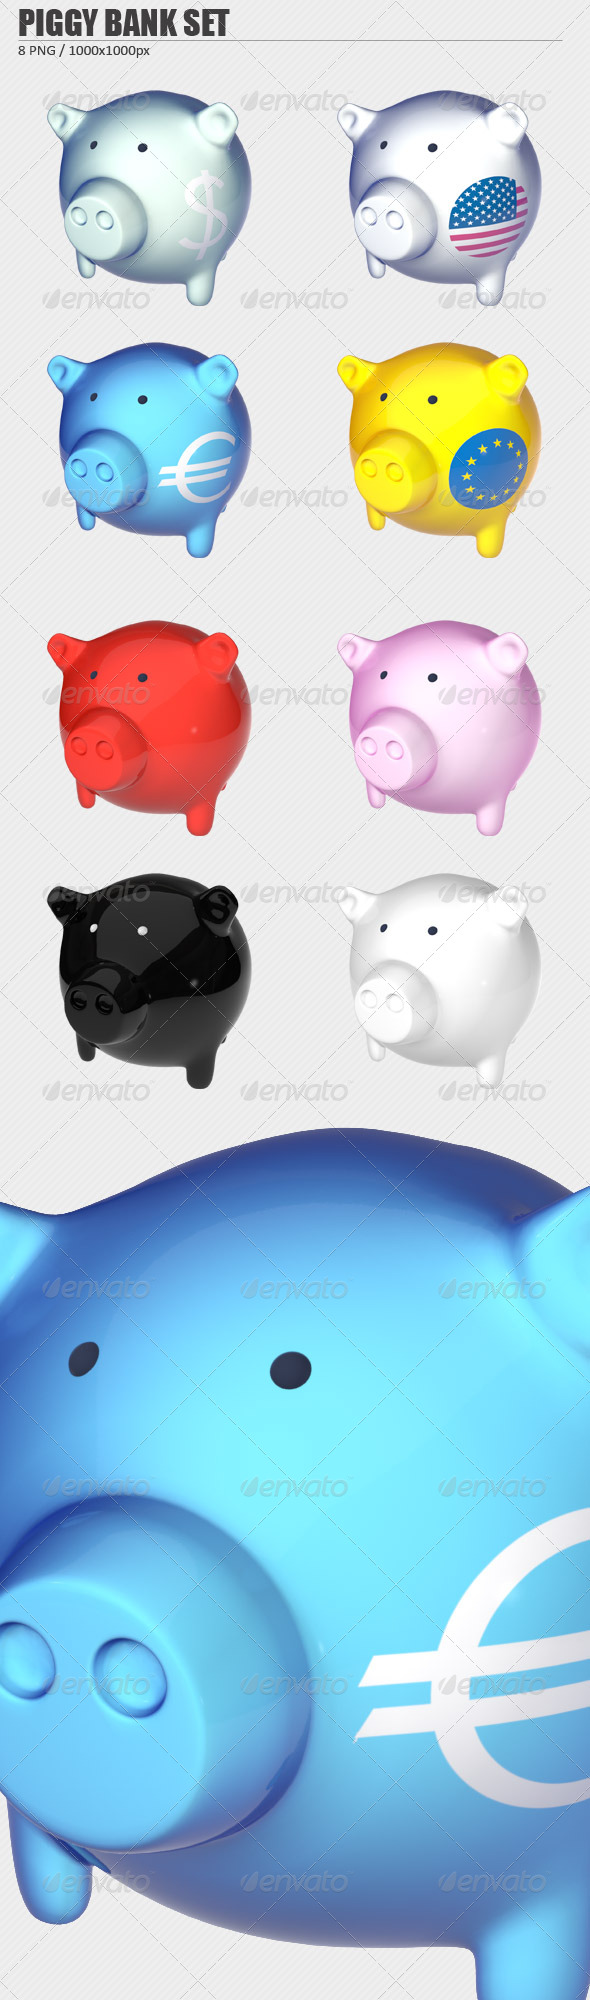 Piggy Bank PNG Set - 3D Renders Graphics